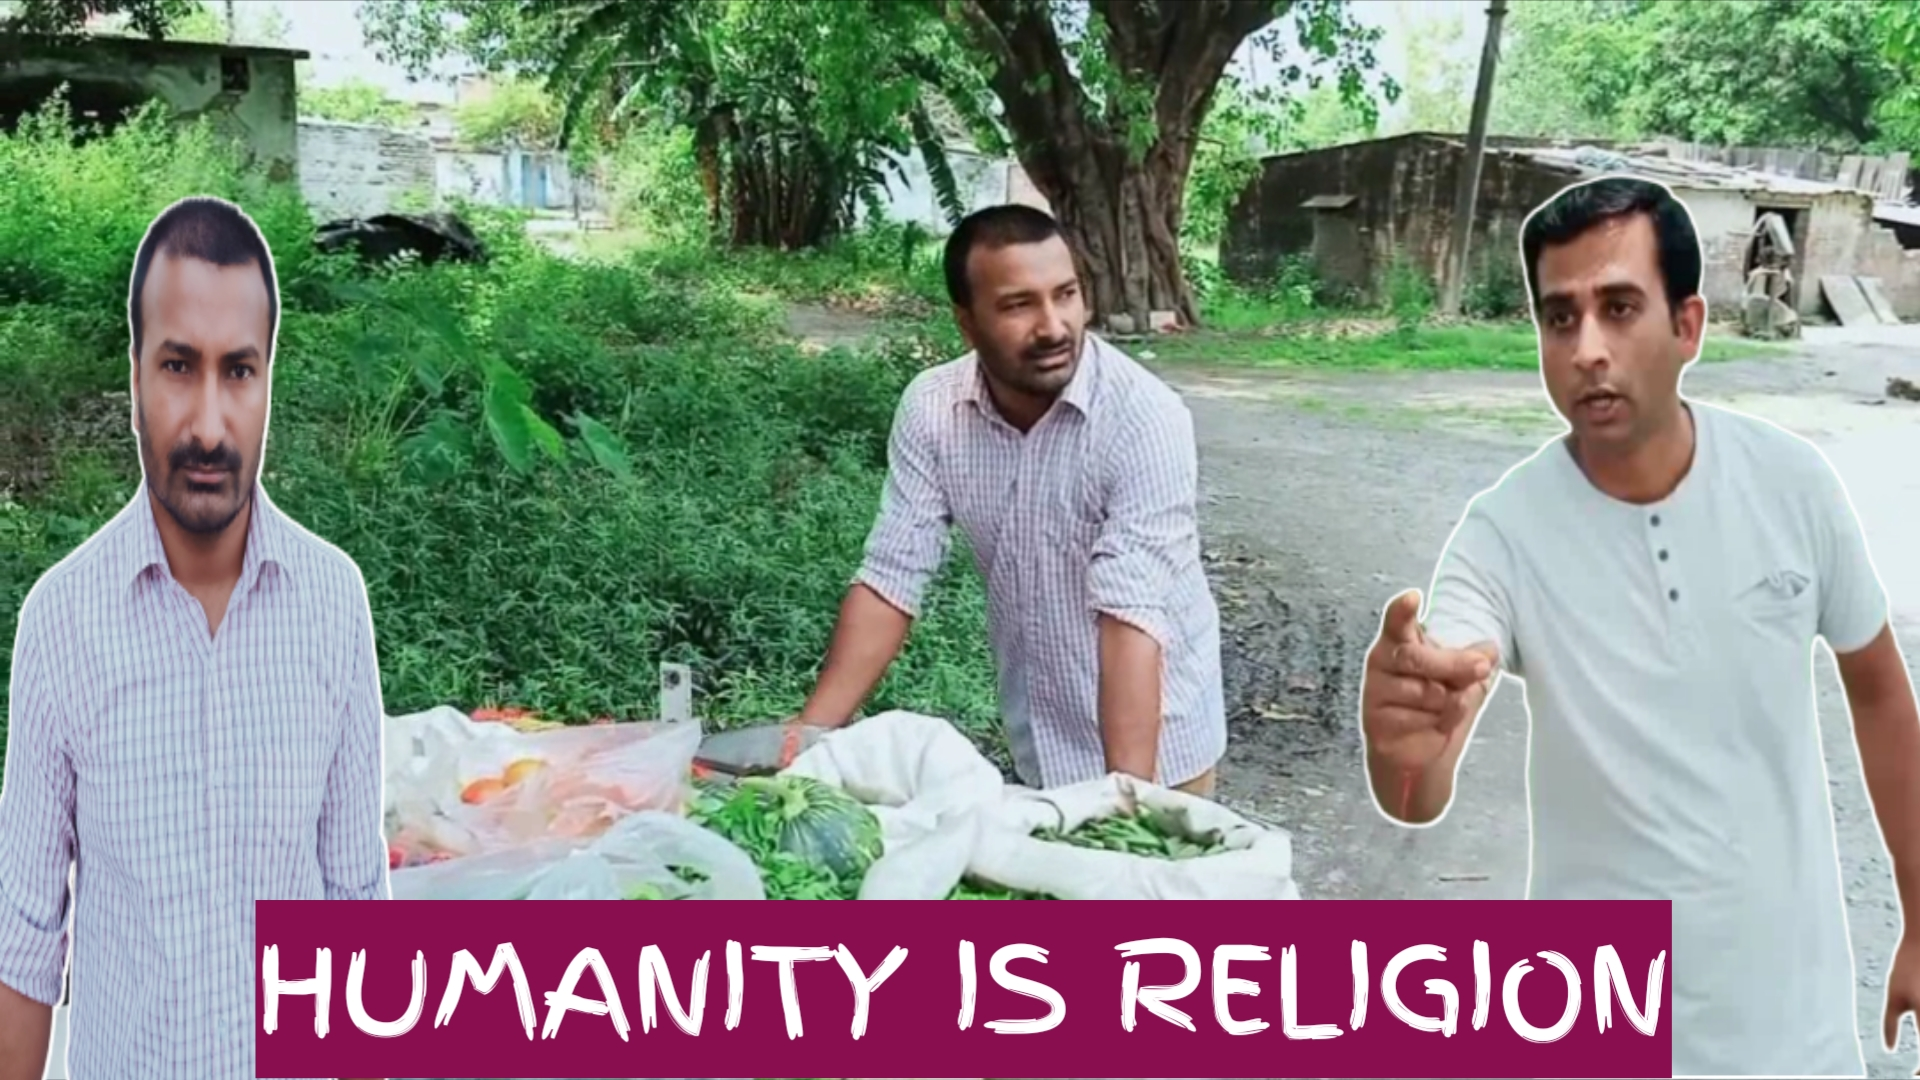 Humanity is religion